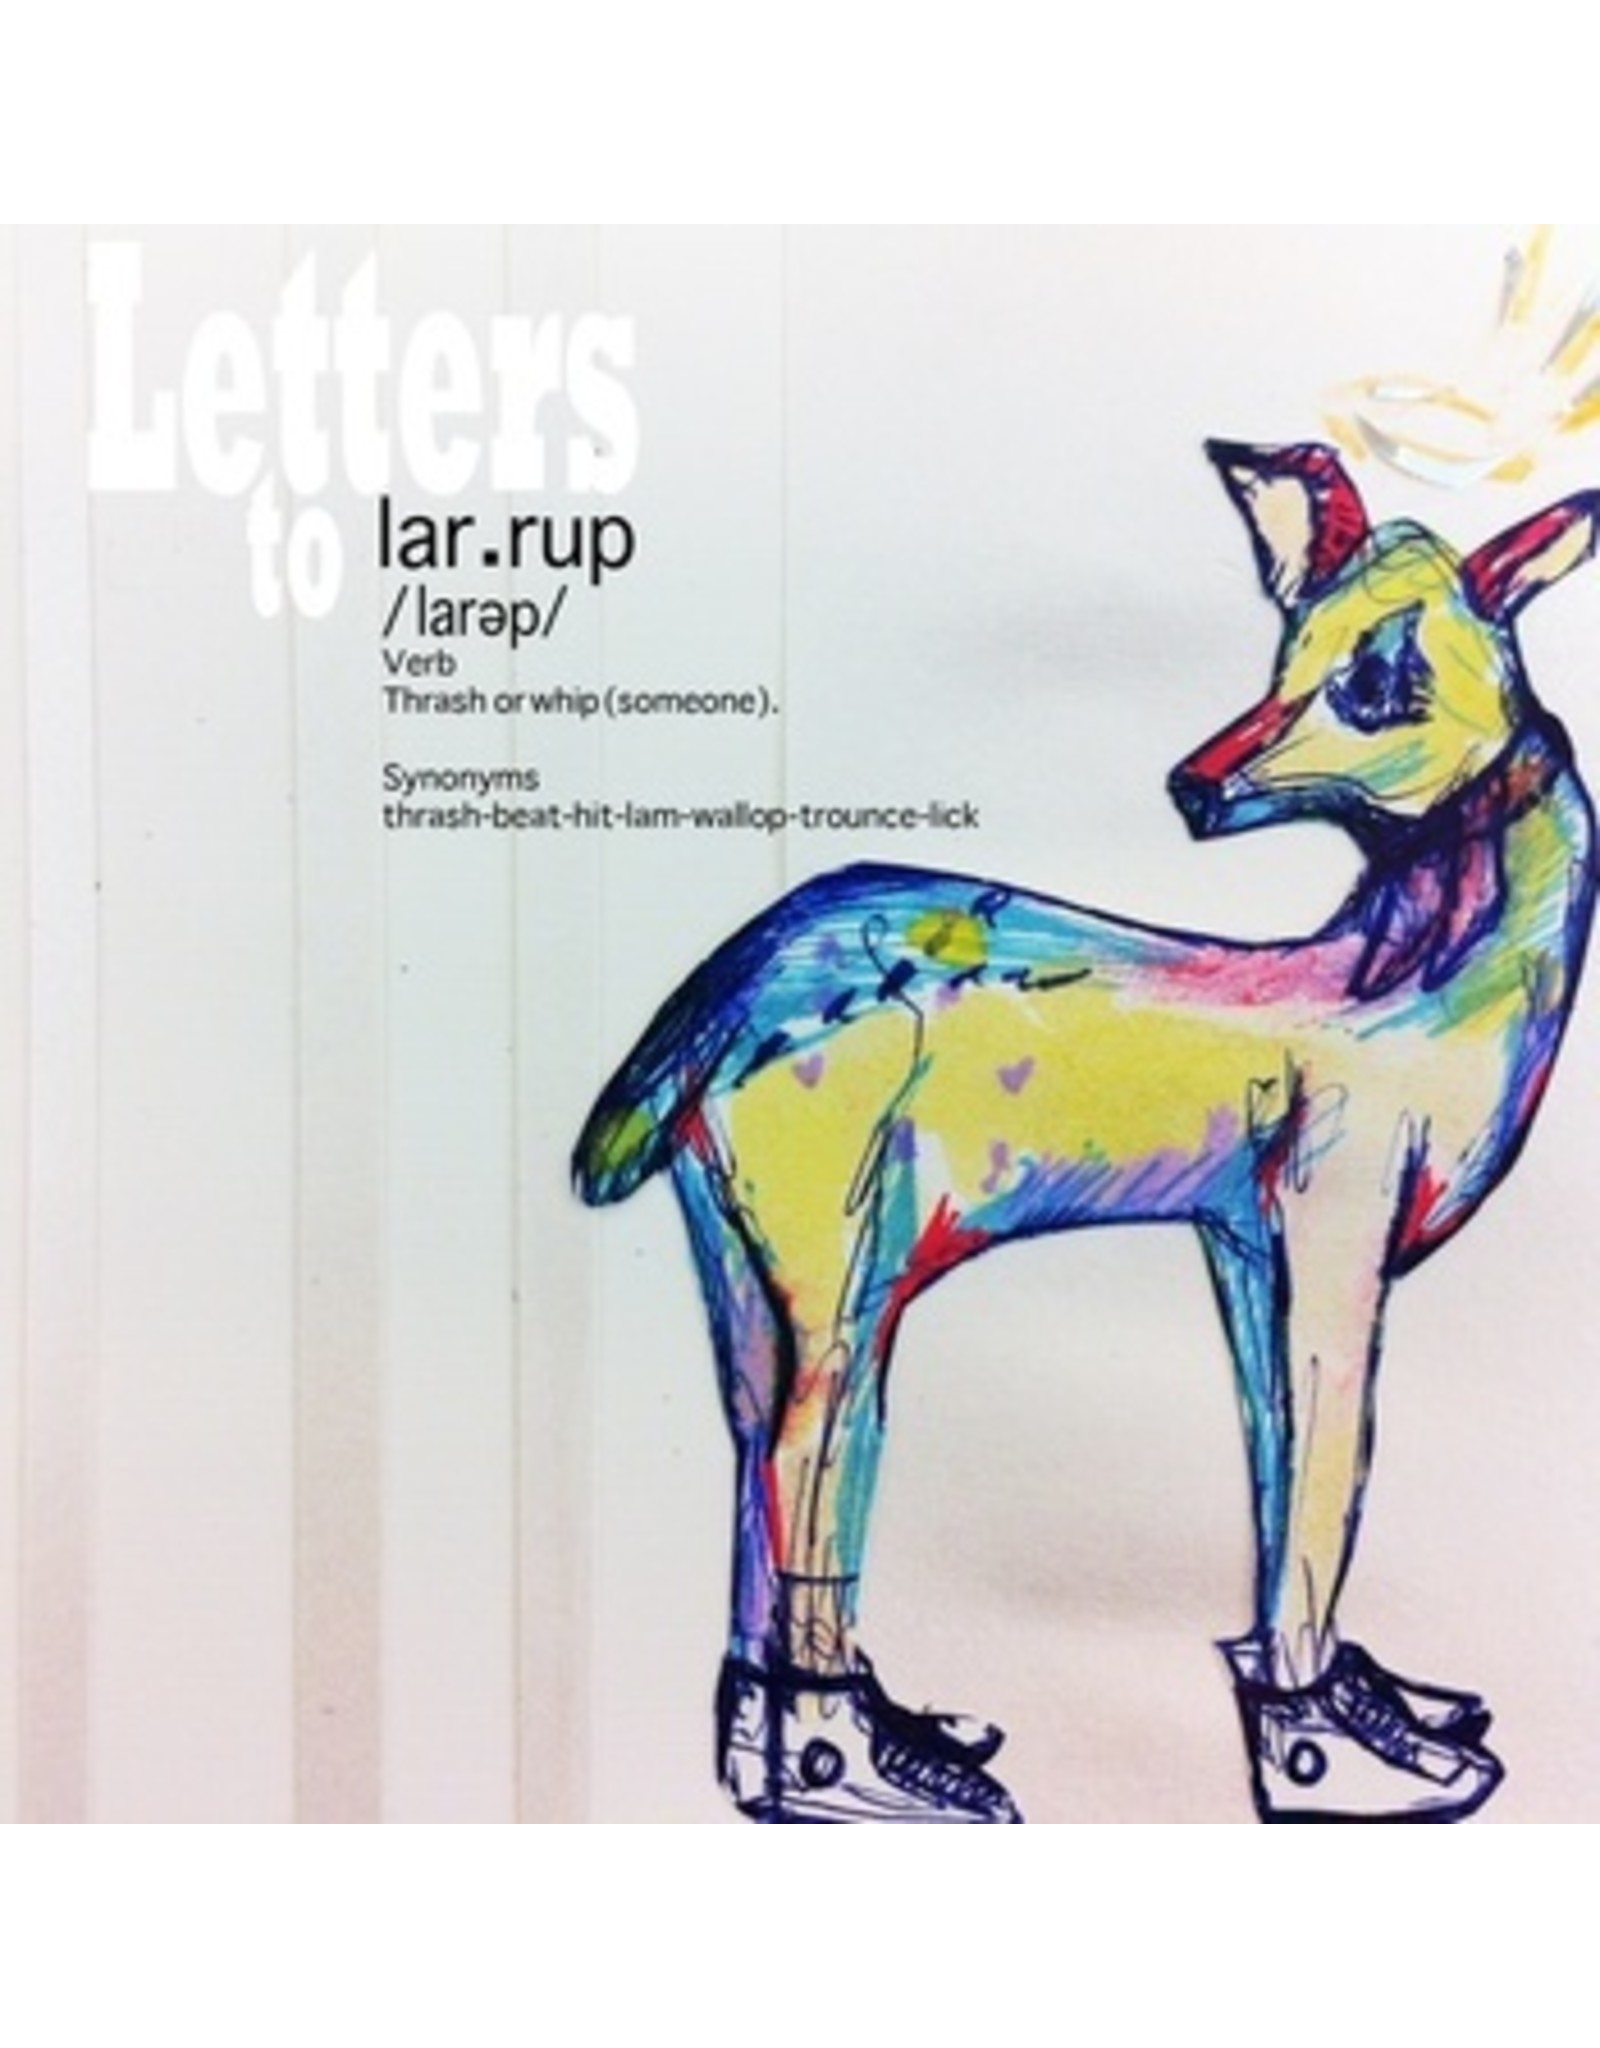 New Vinyl Pocket Of Lollipops - Letters To Larrup 7""